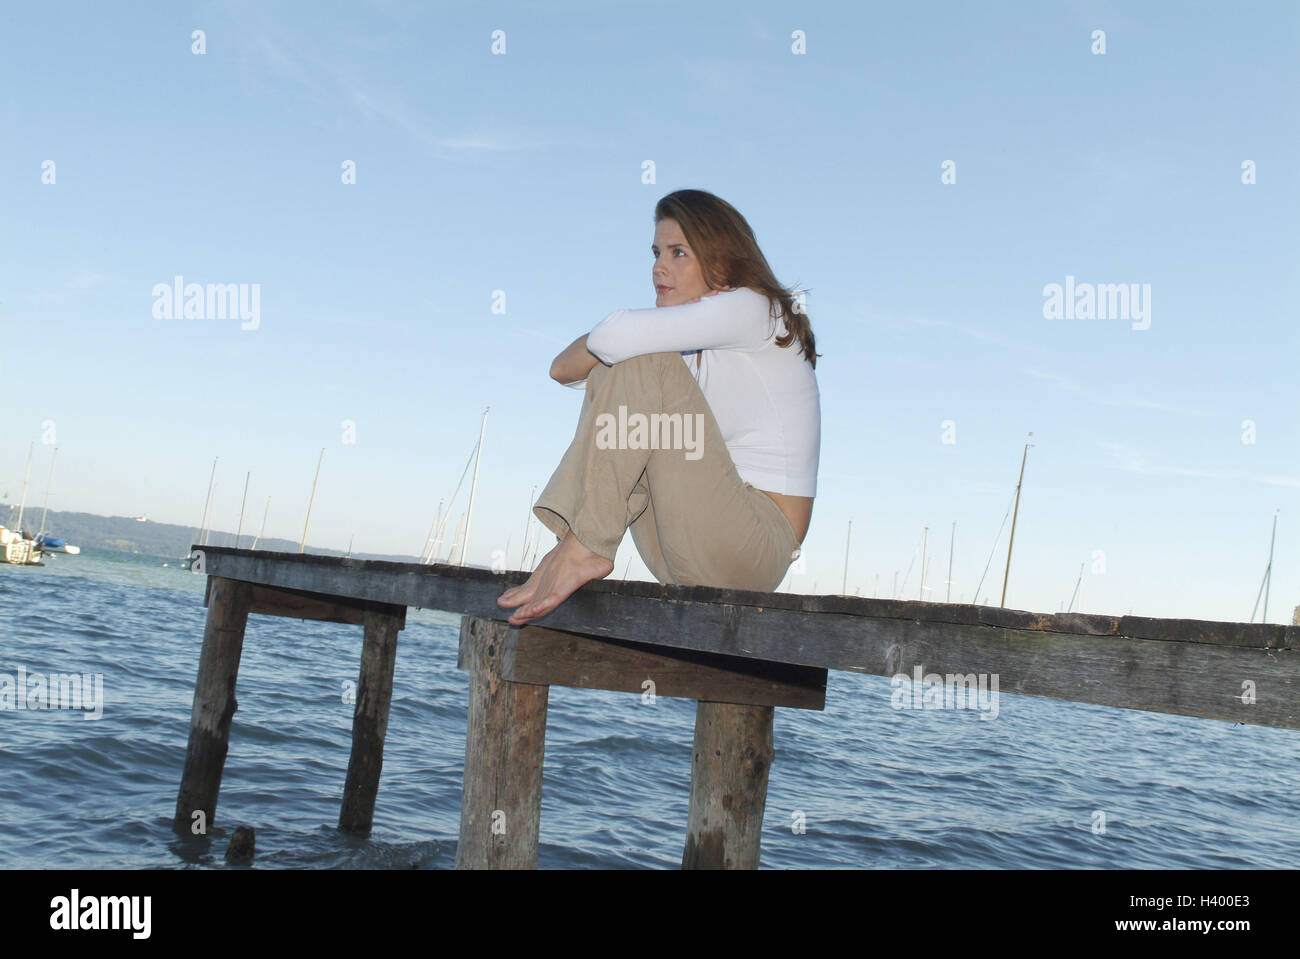 Lakes, wooden jetty, woman, young, sit, take it easy, enjoy Ti5, bridge, 28 years, leisure time, rest, loneliness, - Stock Image